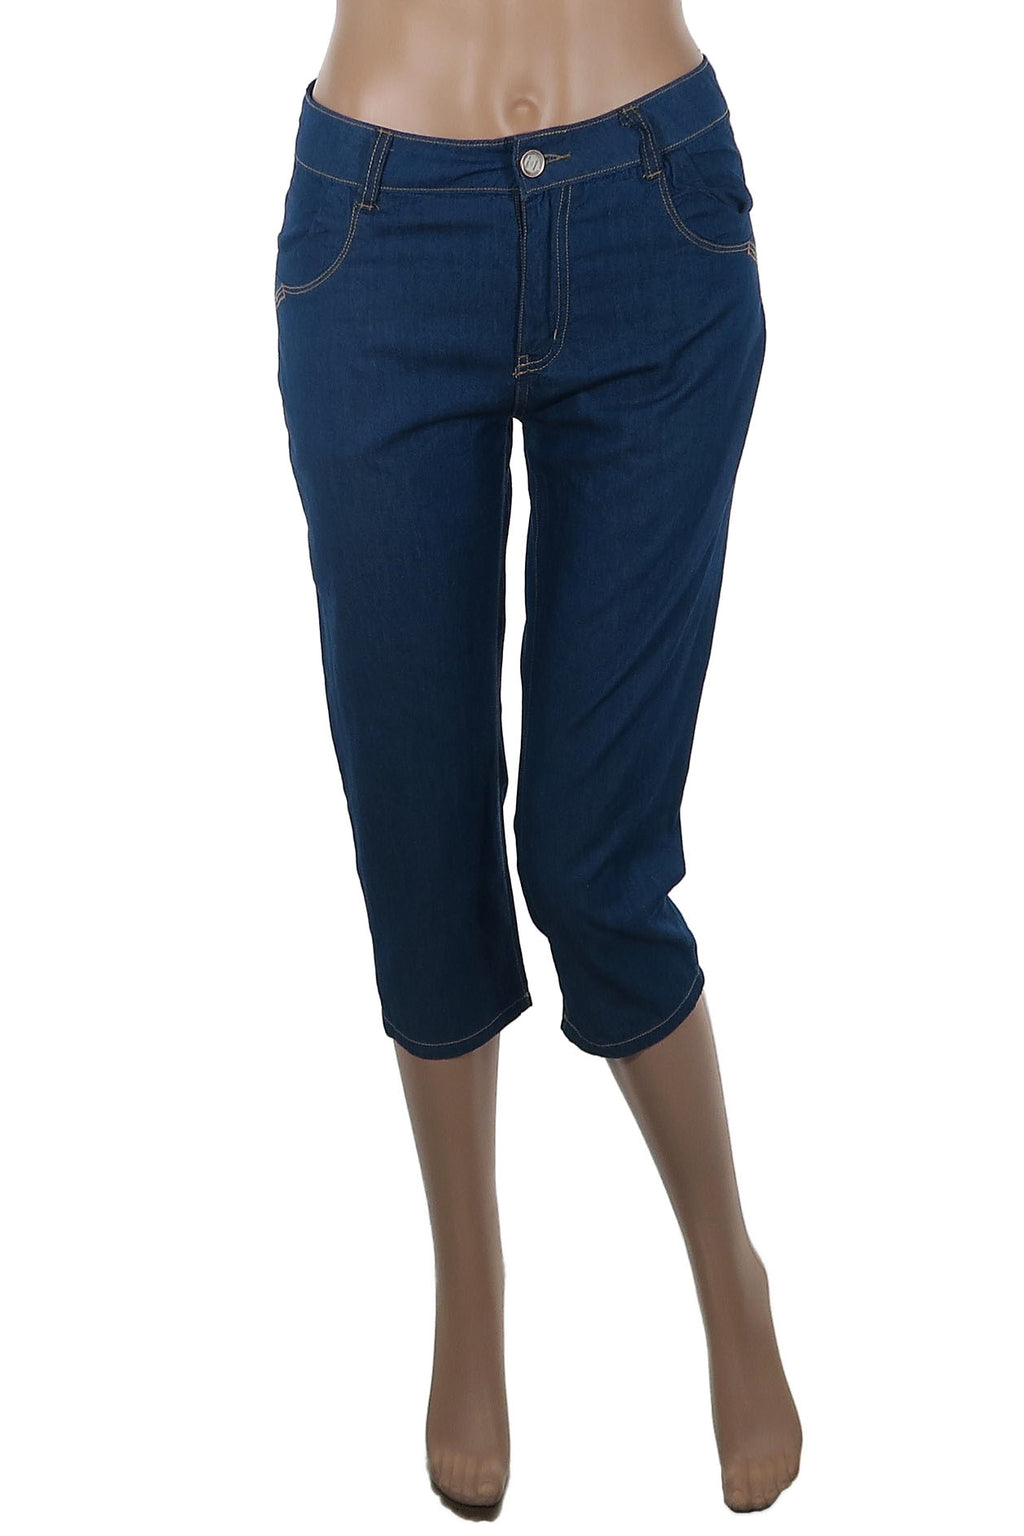 Cotton Denim Look Capri